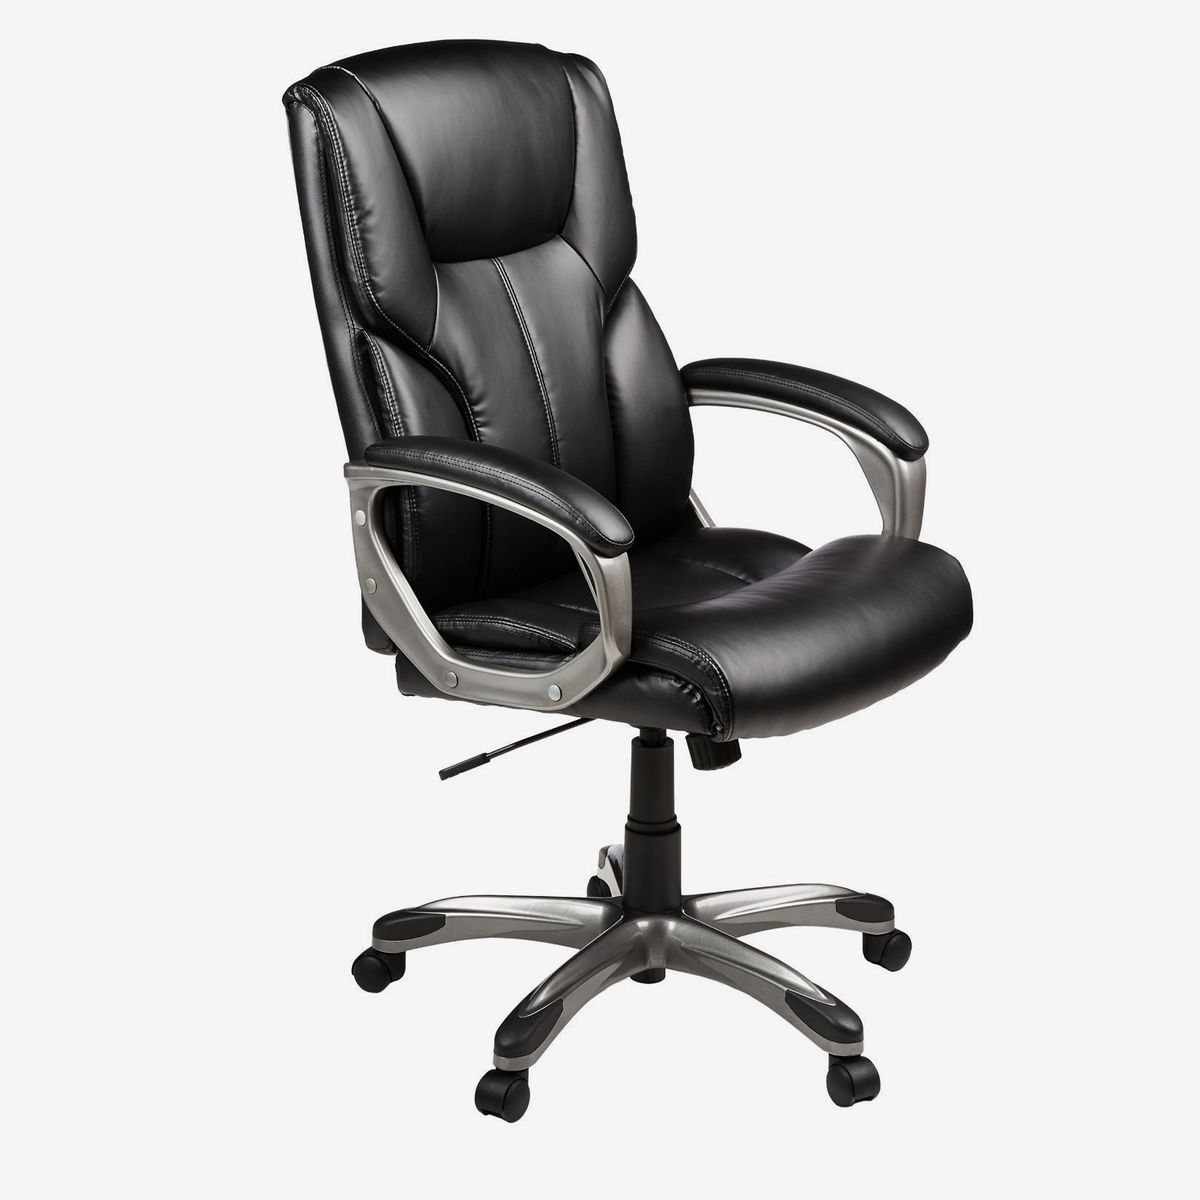 14 Best Office Chairs And Home Office Chairs 2020 The Strategist New York Magazine